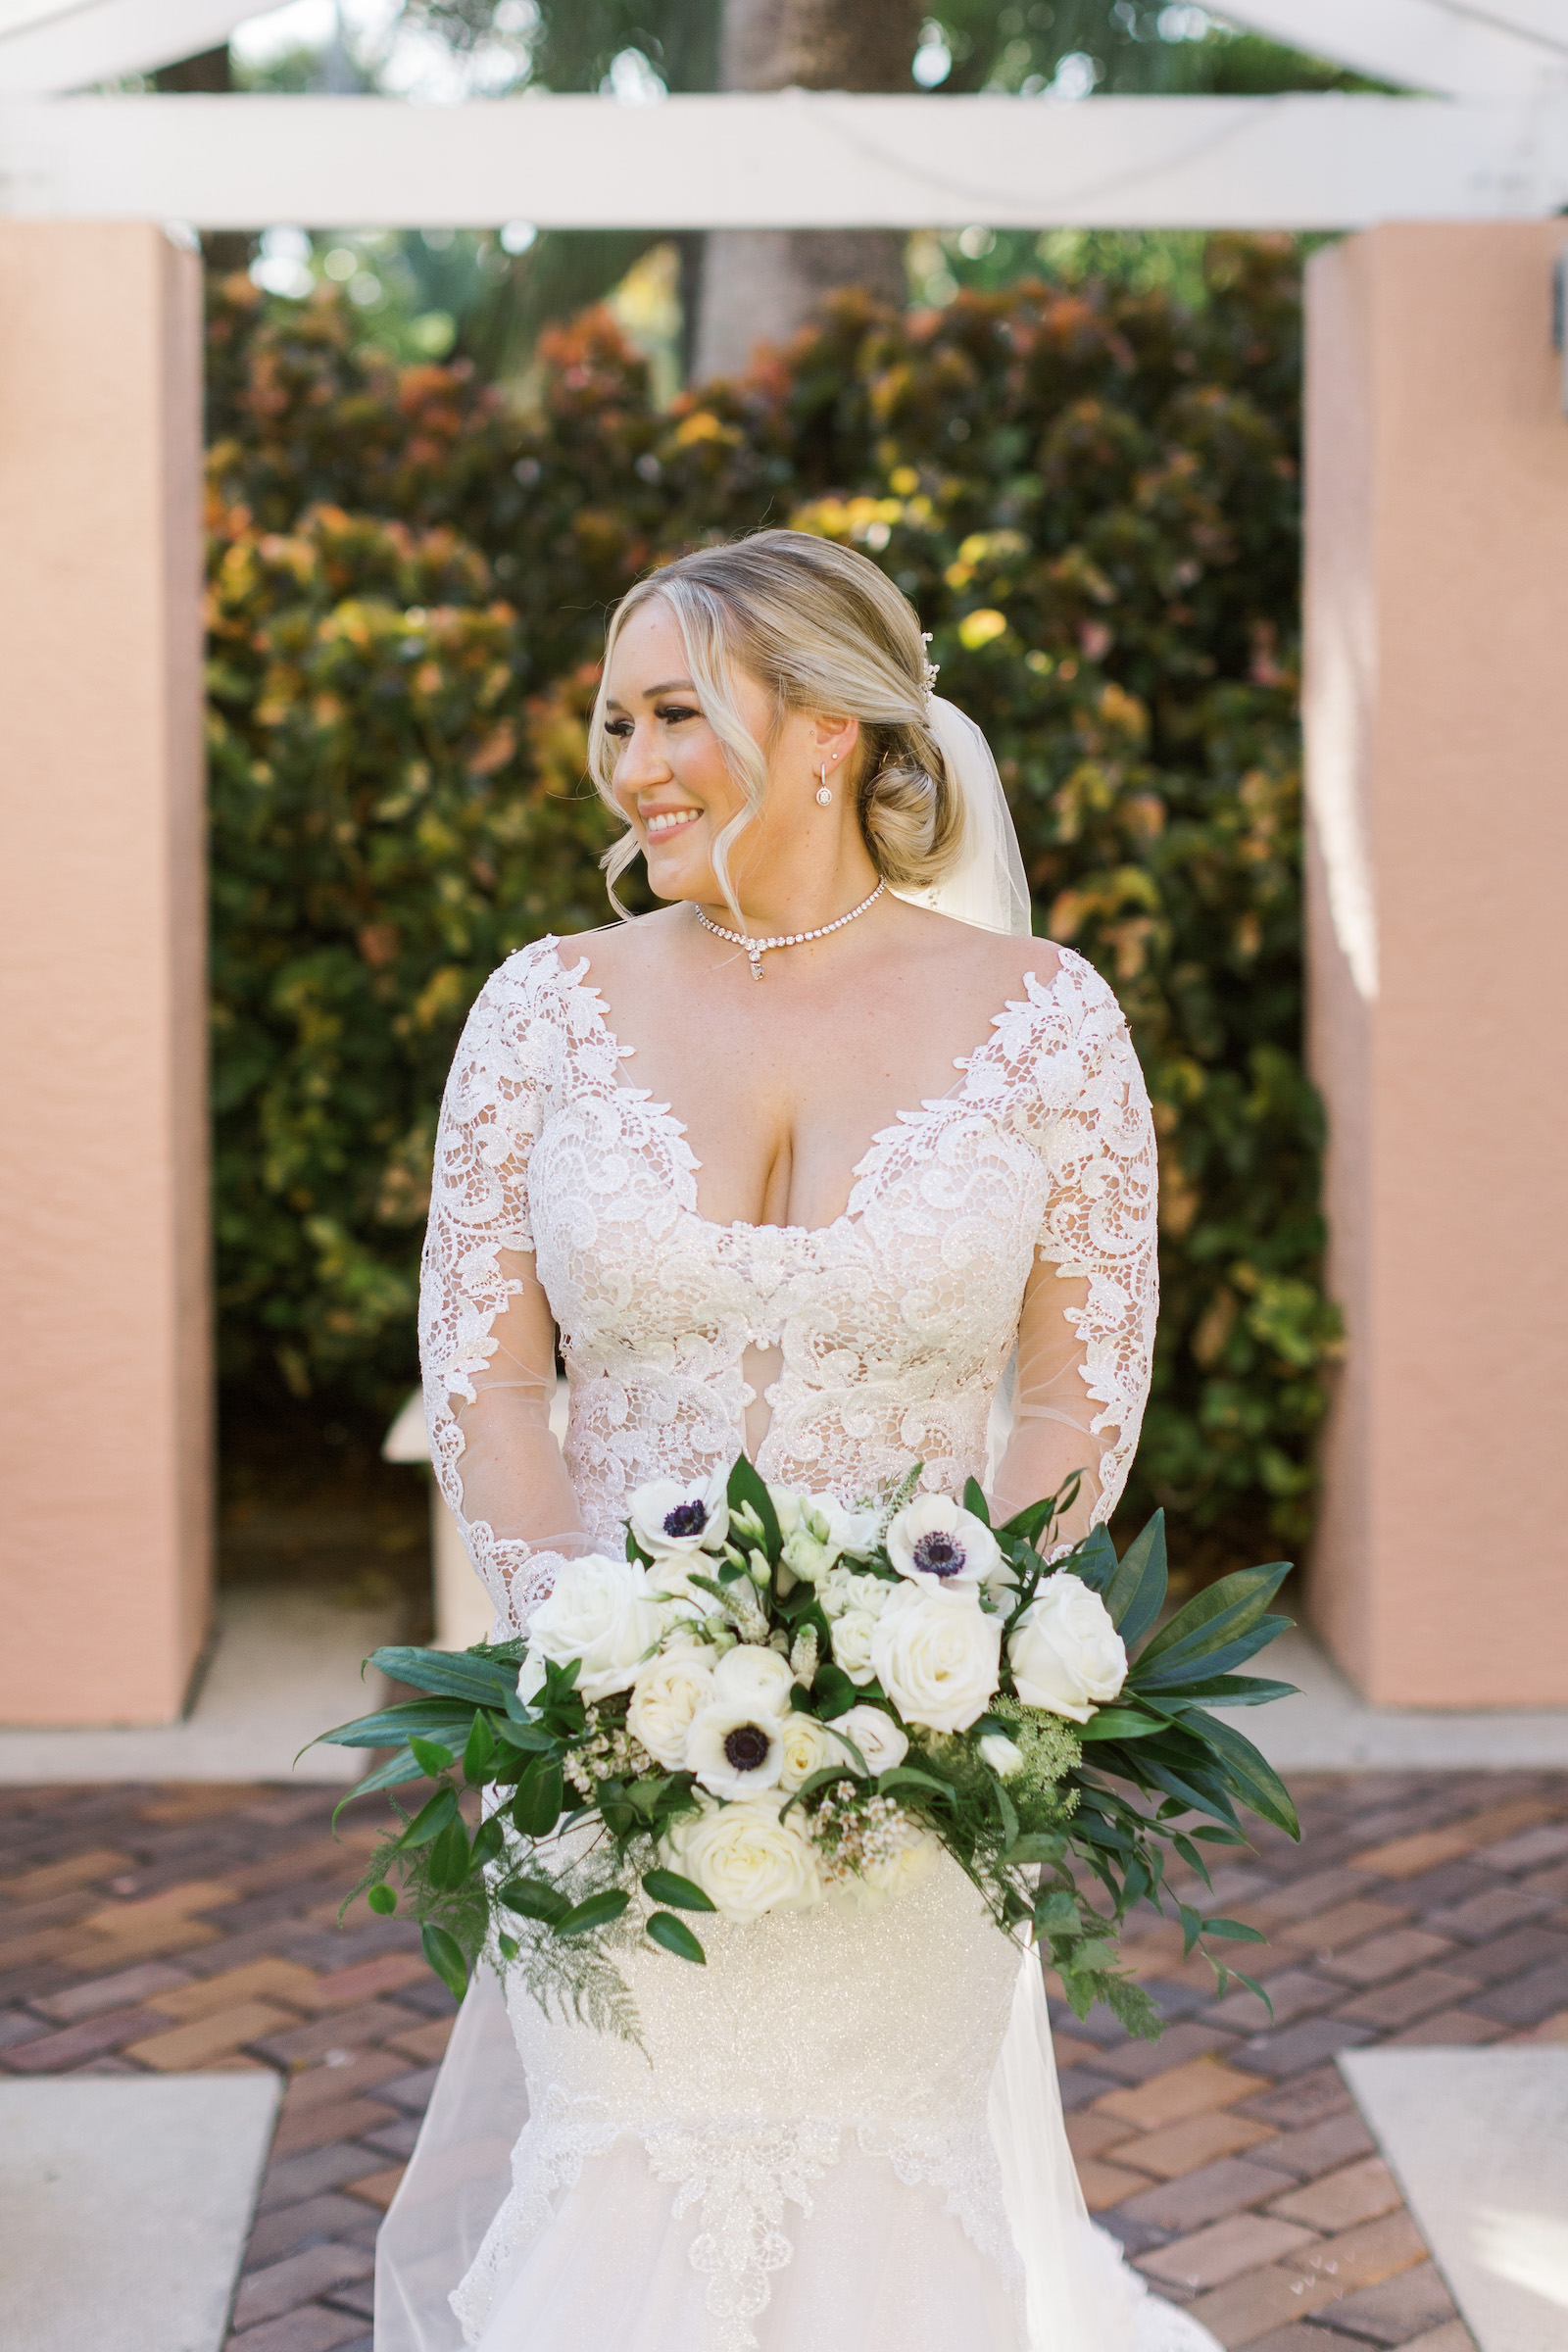 Tampa Bride Wearing Lace and Illusion Plunging Neckline Wedding Dress holding White Anemone. Rose and Greenery Floral Bouquet